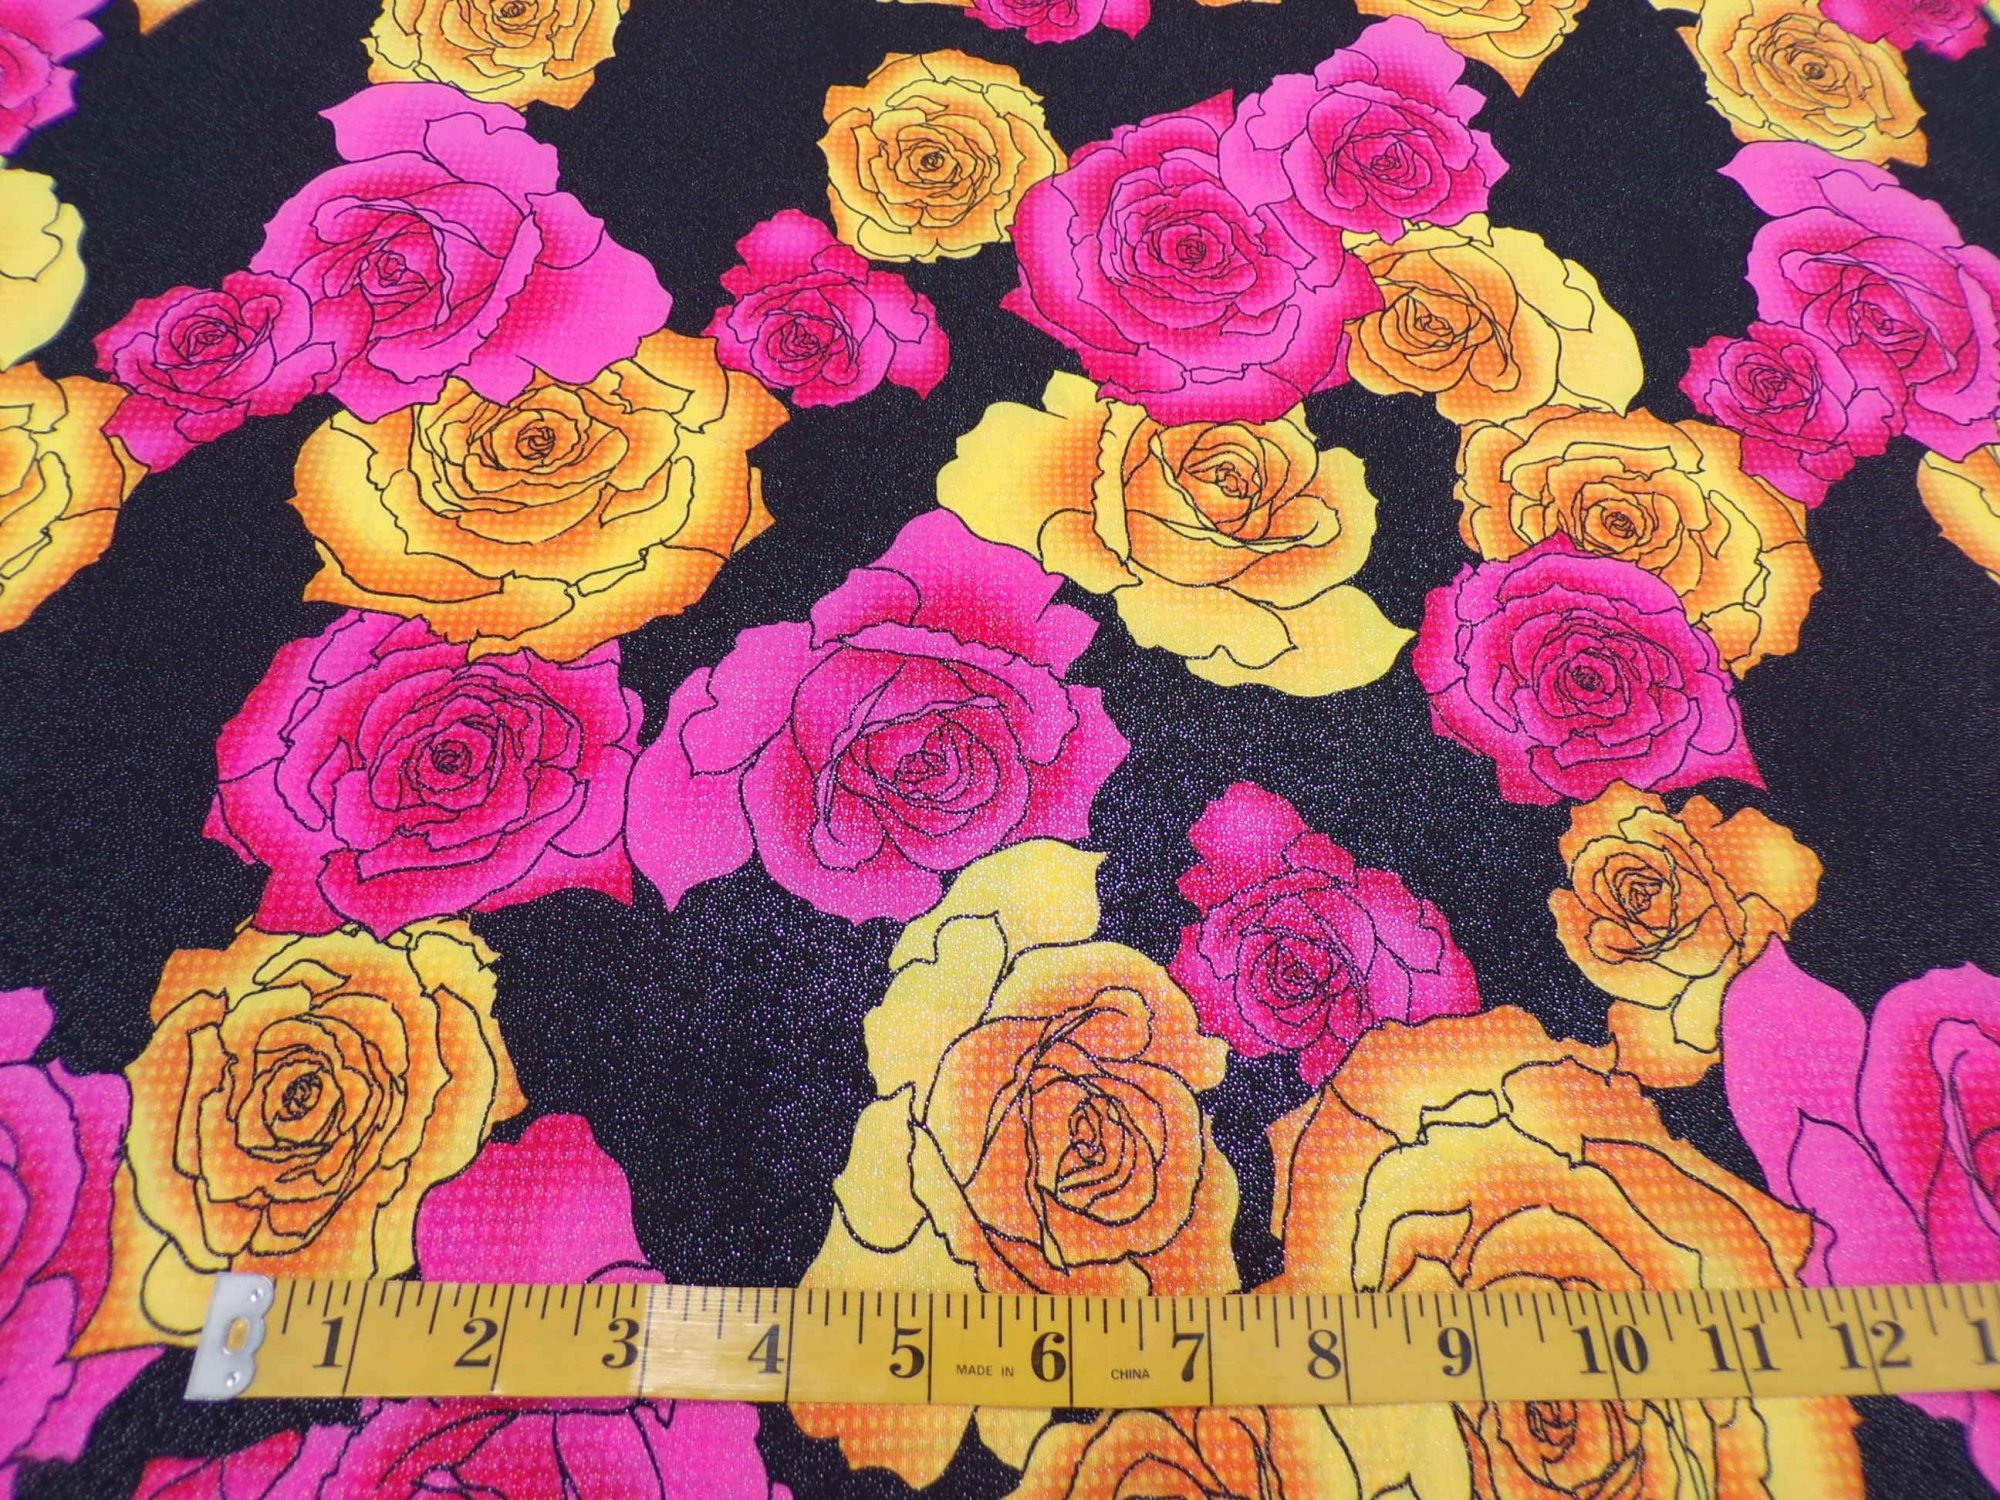 ITY Jersey - Pink and Yellow Roses on Black with Shimmer